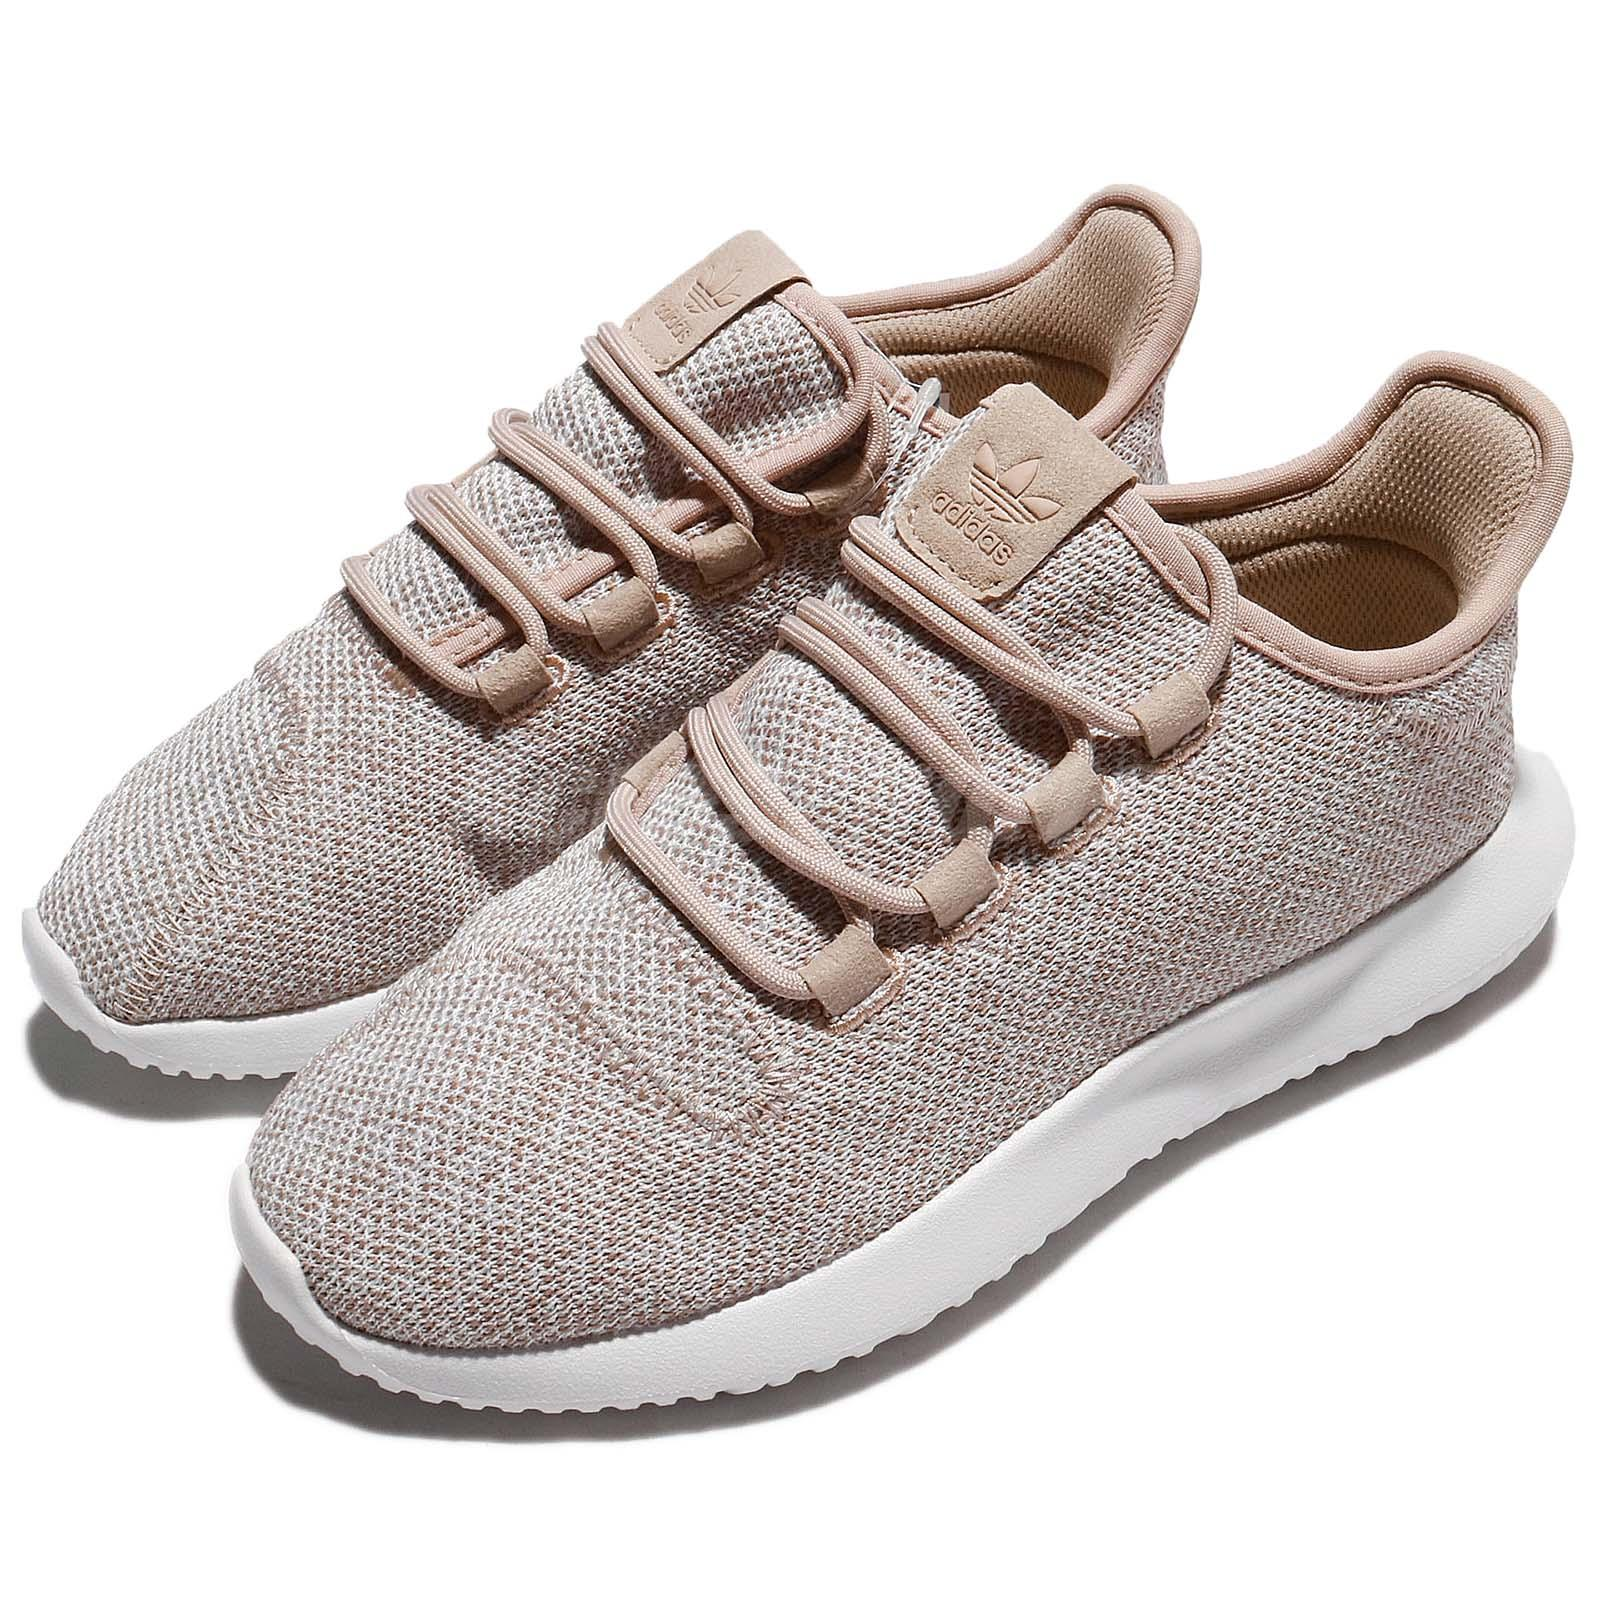 dfb7c9e5625 Details about adidas Originals Tubular Shadow W Clear Brown Women Running  Shoes Sneaker DB0834